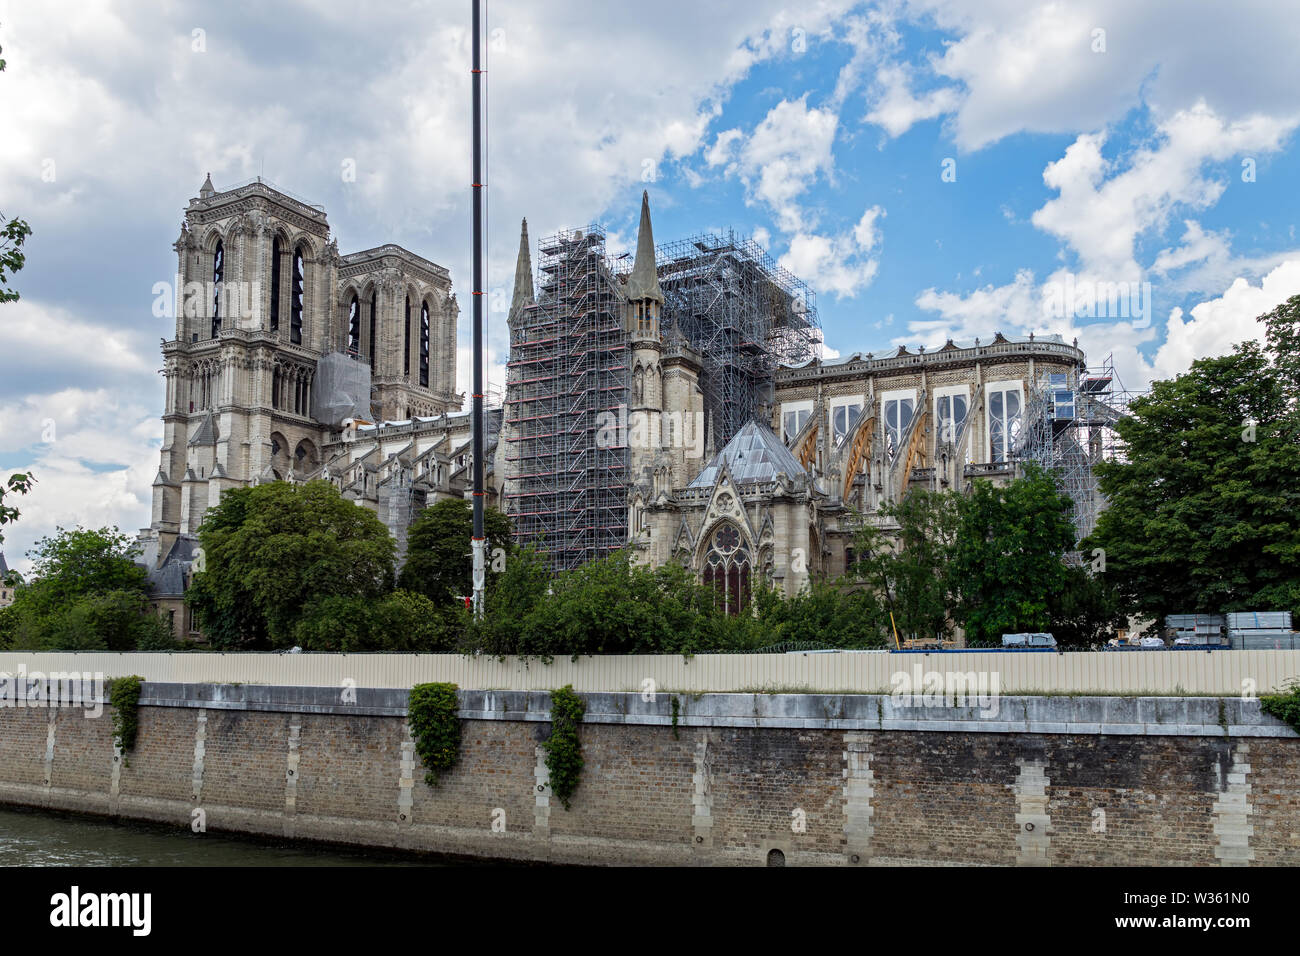 Notre Dame de Paris: Reinforcement of the flying buttresses after the fire - Stock Image